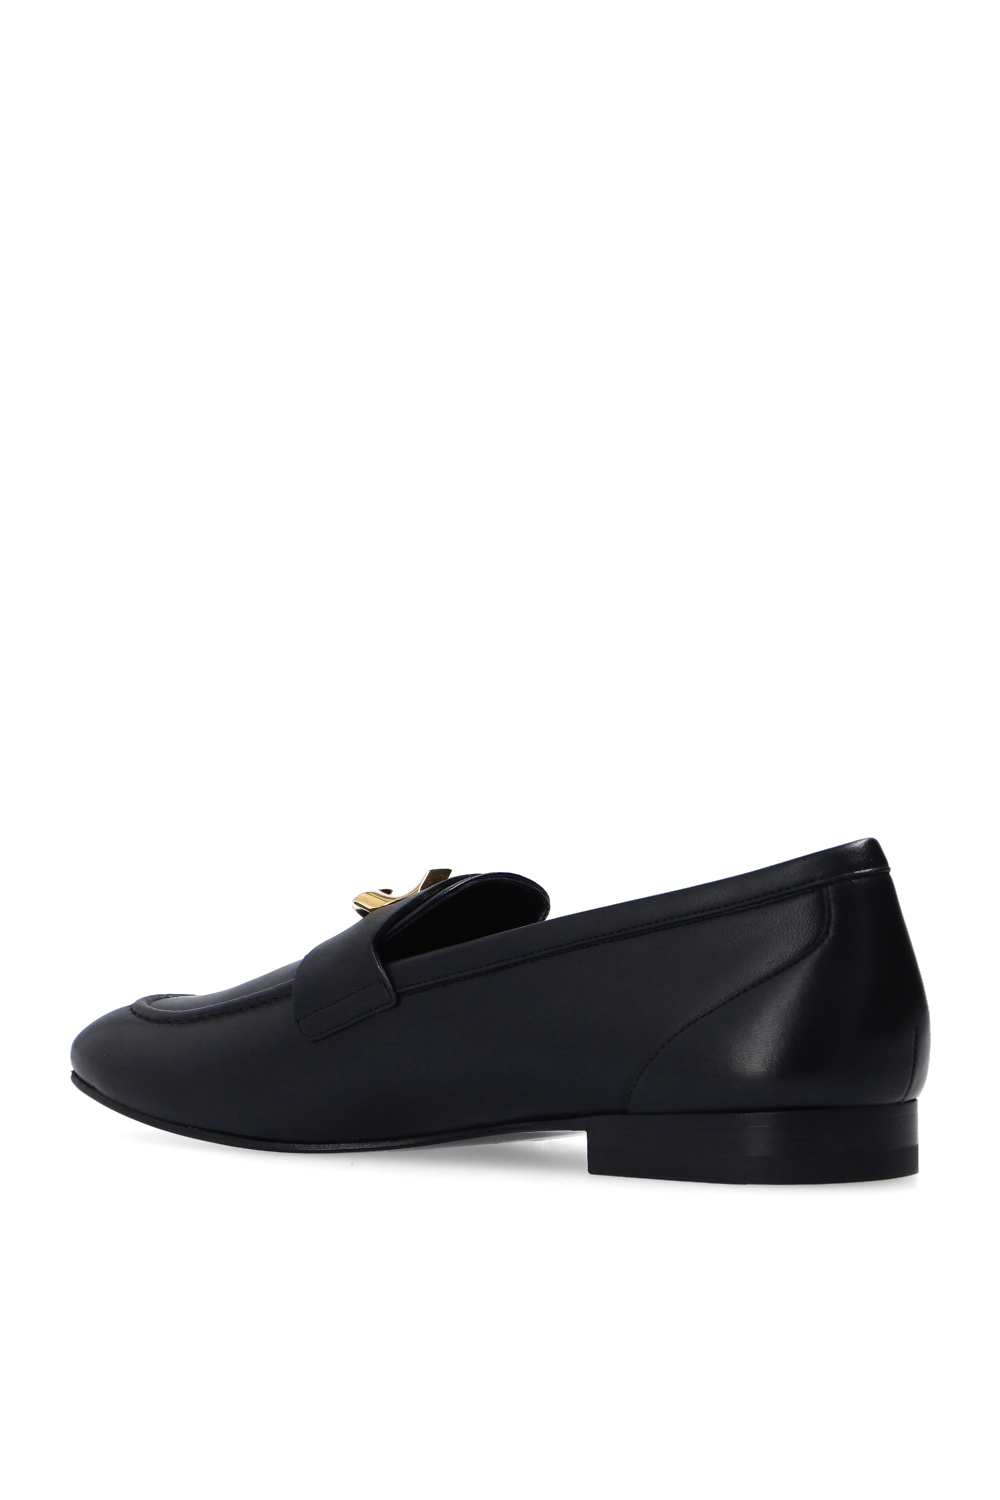 Givenchy Leather loafers